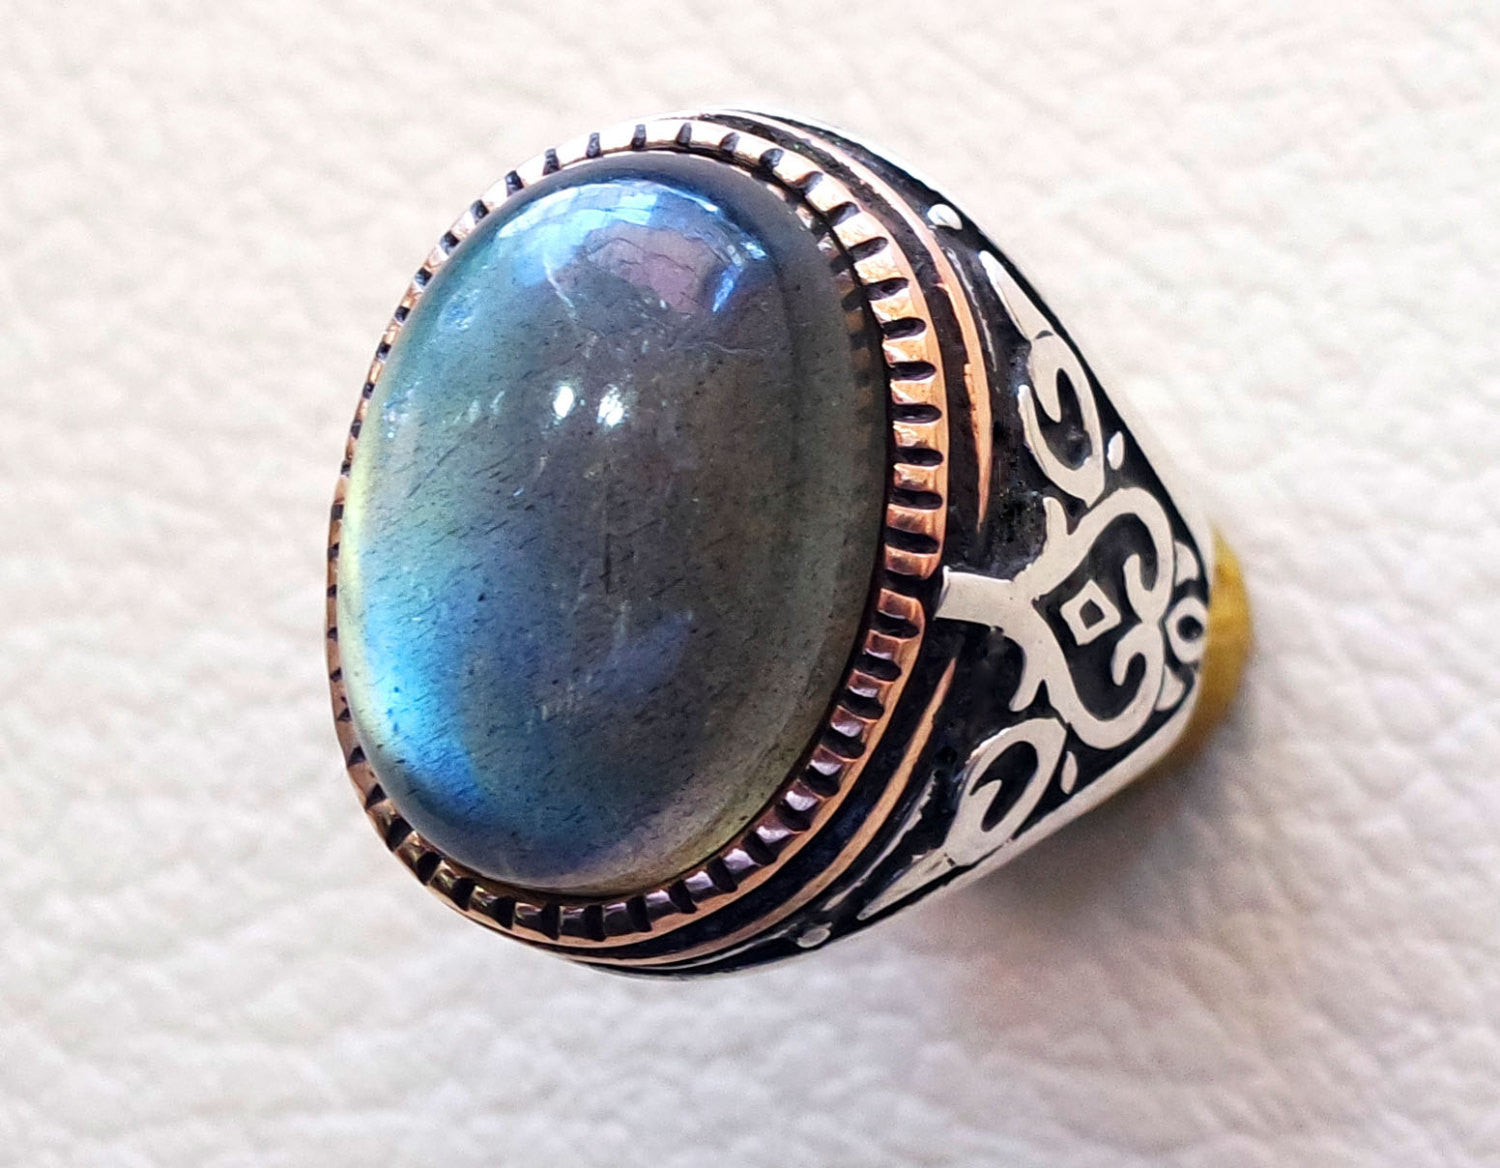 Labradorite natural stone green grey semi precious stone heavy man ring sterling silver 925 bronze frame any sizes jewelry fast shipping